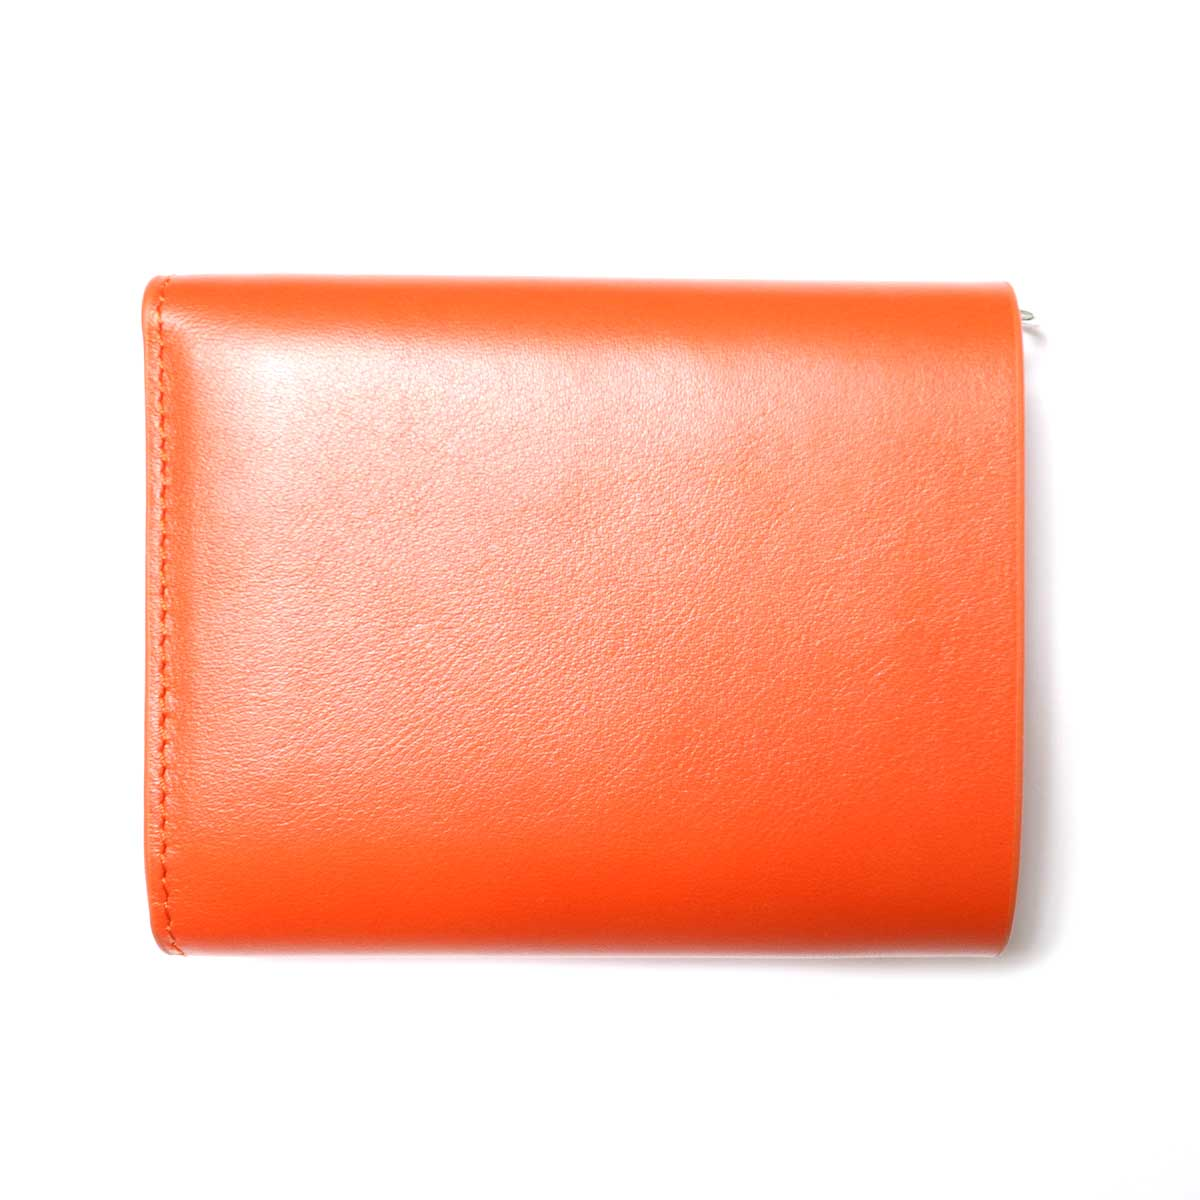 Aeta / FG LEATHER WALLET typeA (ORANGE) 背面